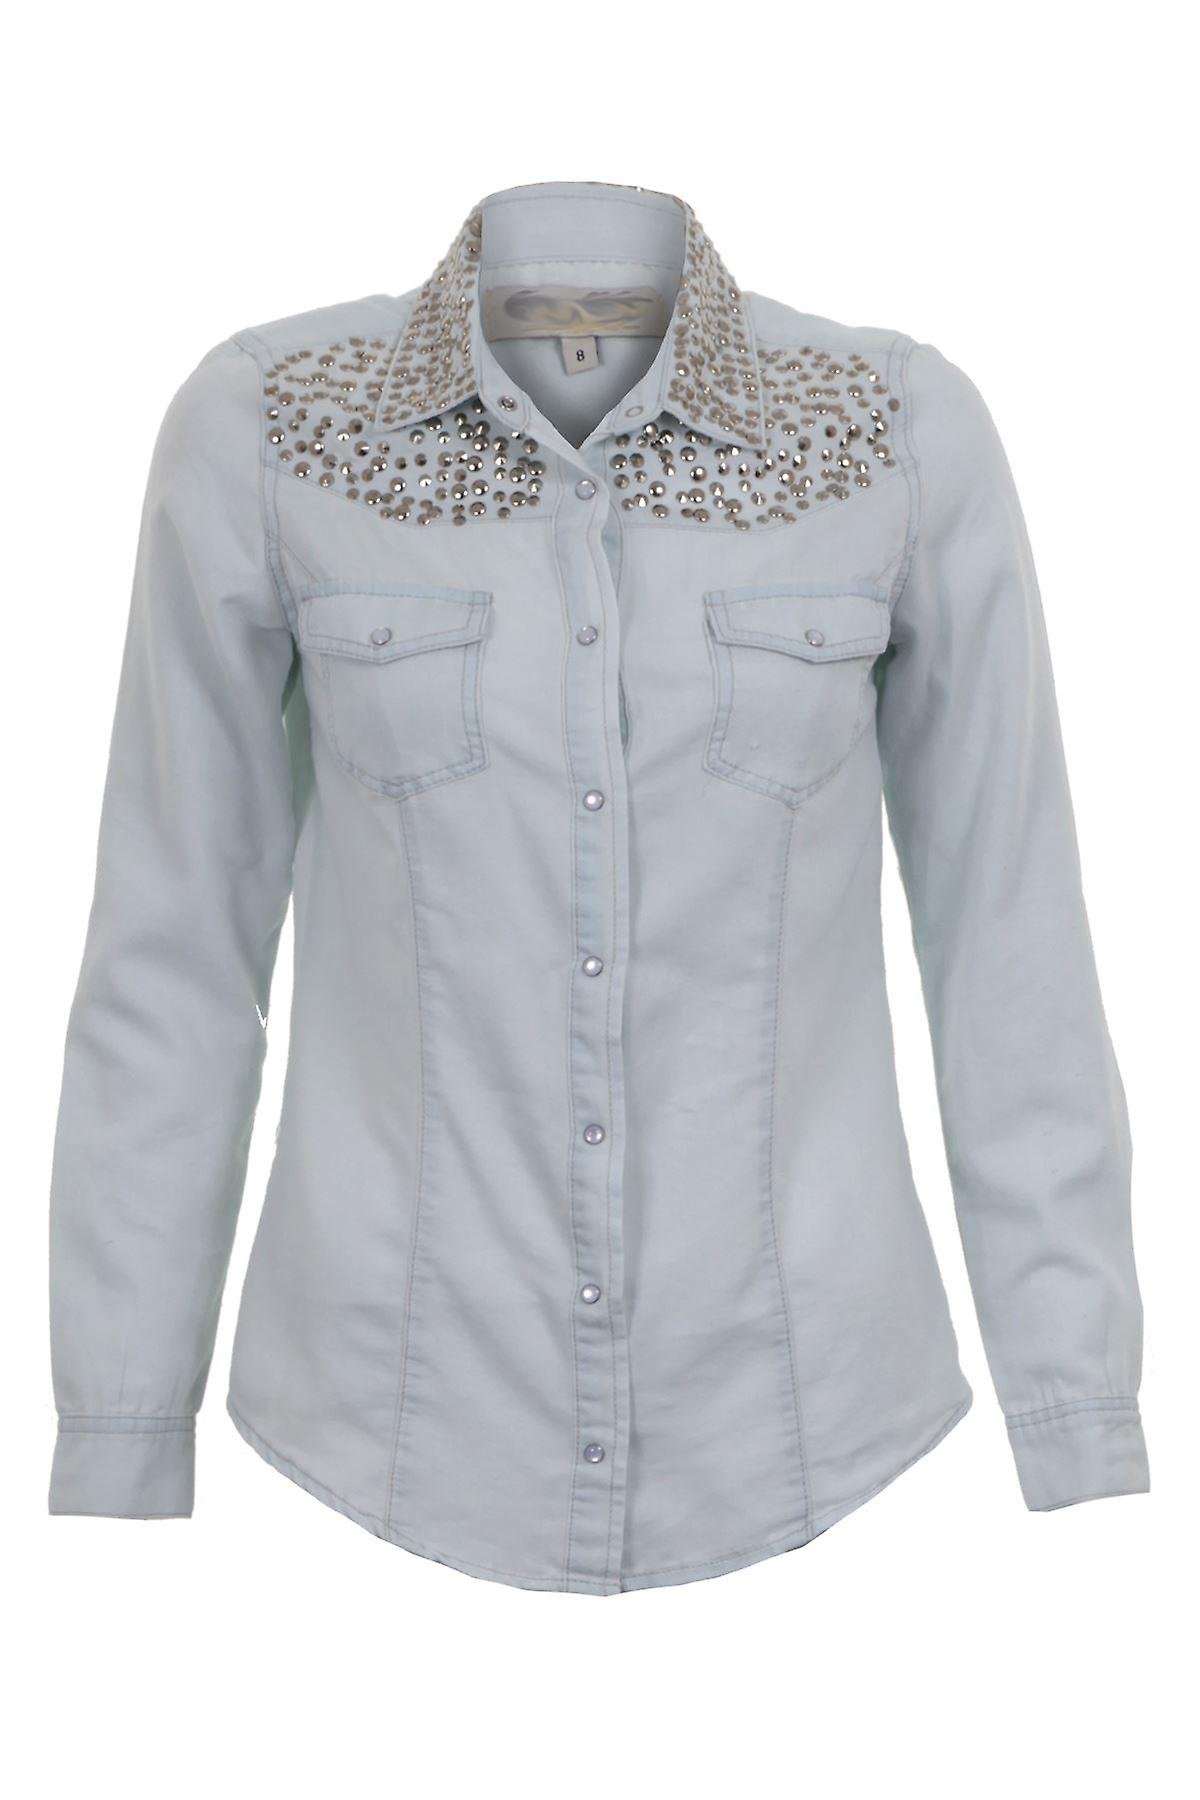 New Ladies Long Sleeve Studded Shirt Bleach Effect Women's Blouse